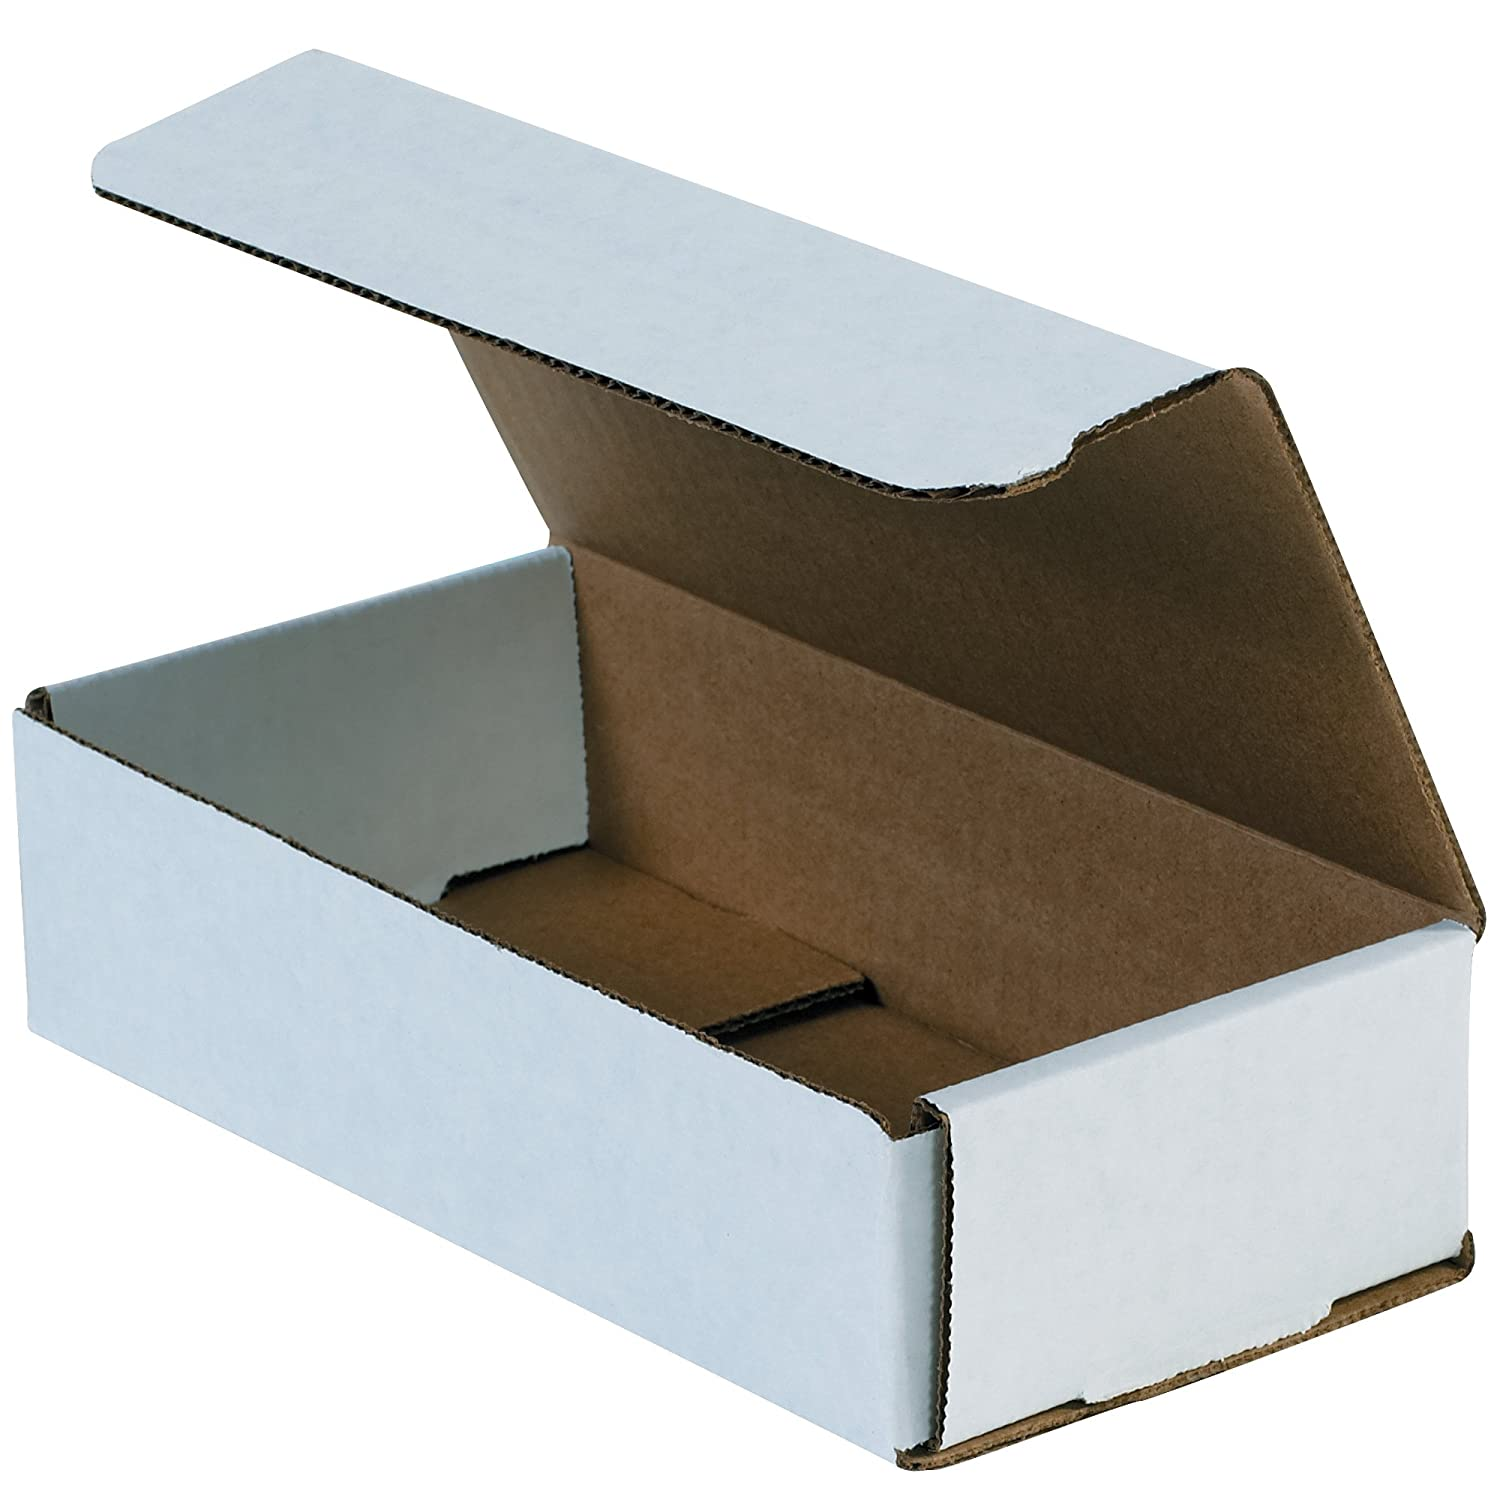 Aviditi White Corrugated Cardboard Mailing Boxes, 9 x 4 x 3 Inches, Pack of 50, Crush-Proof, for Shipping, Mailing and Storing